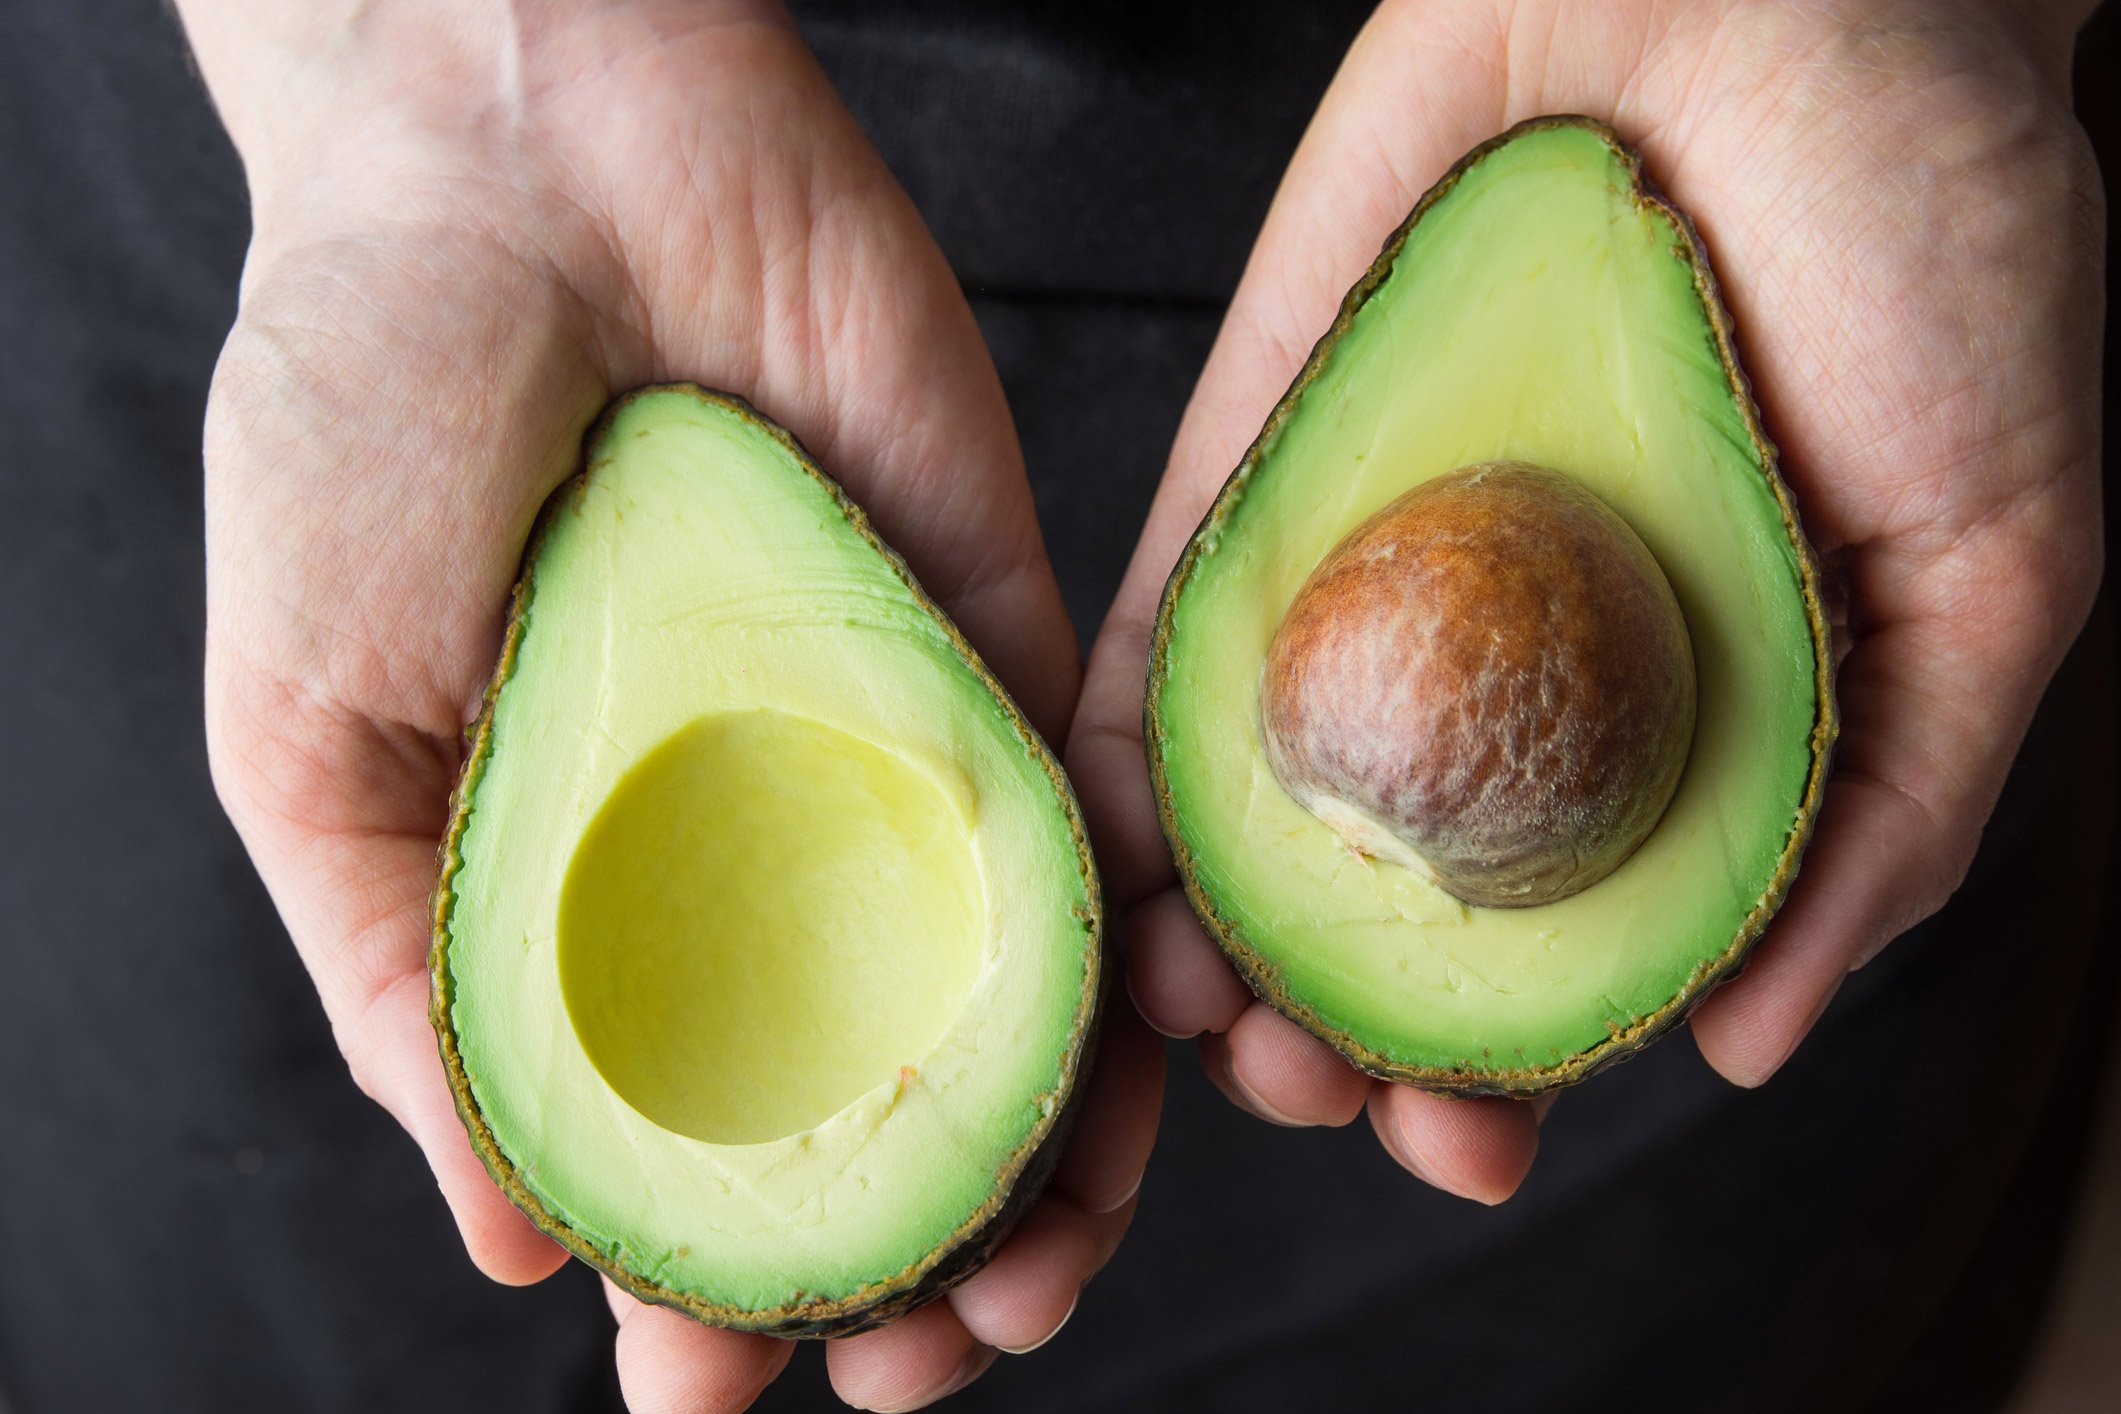 avocado health benefits: 15 reasons to eat these fabulous